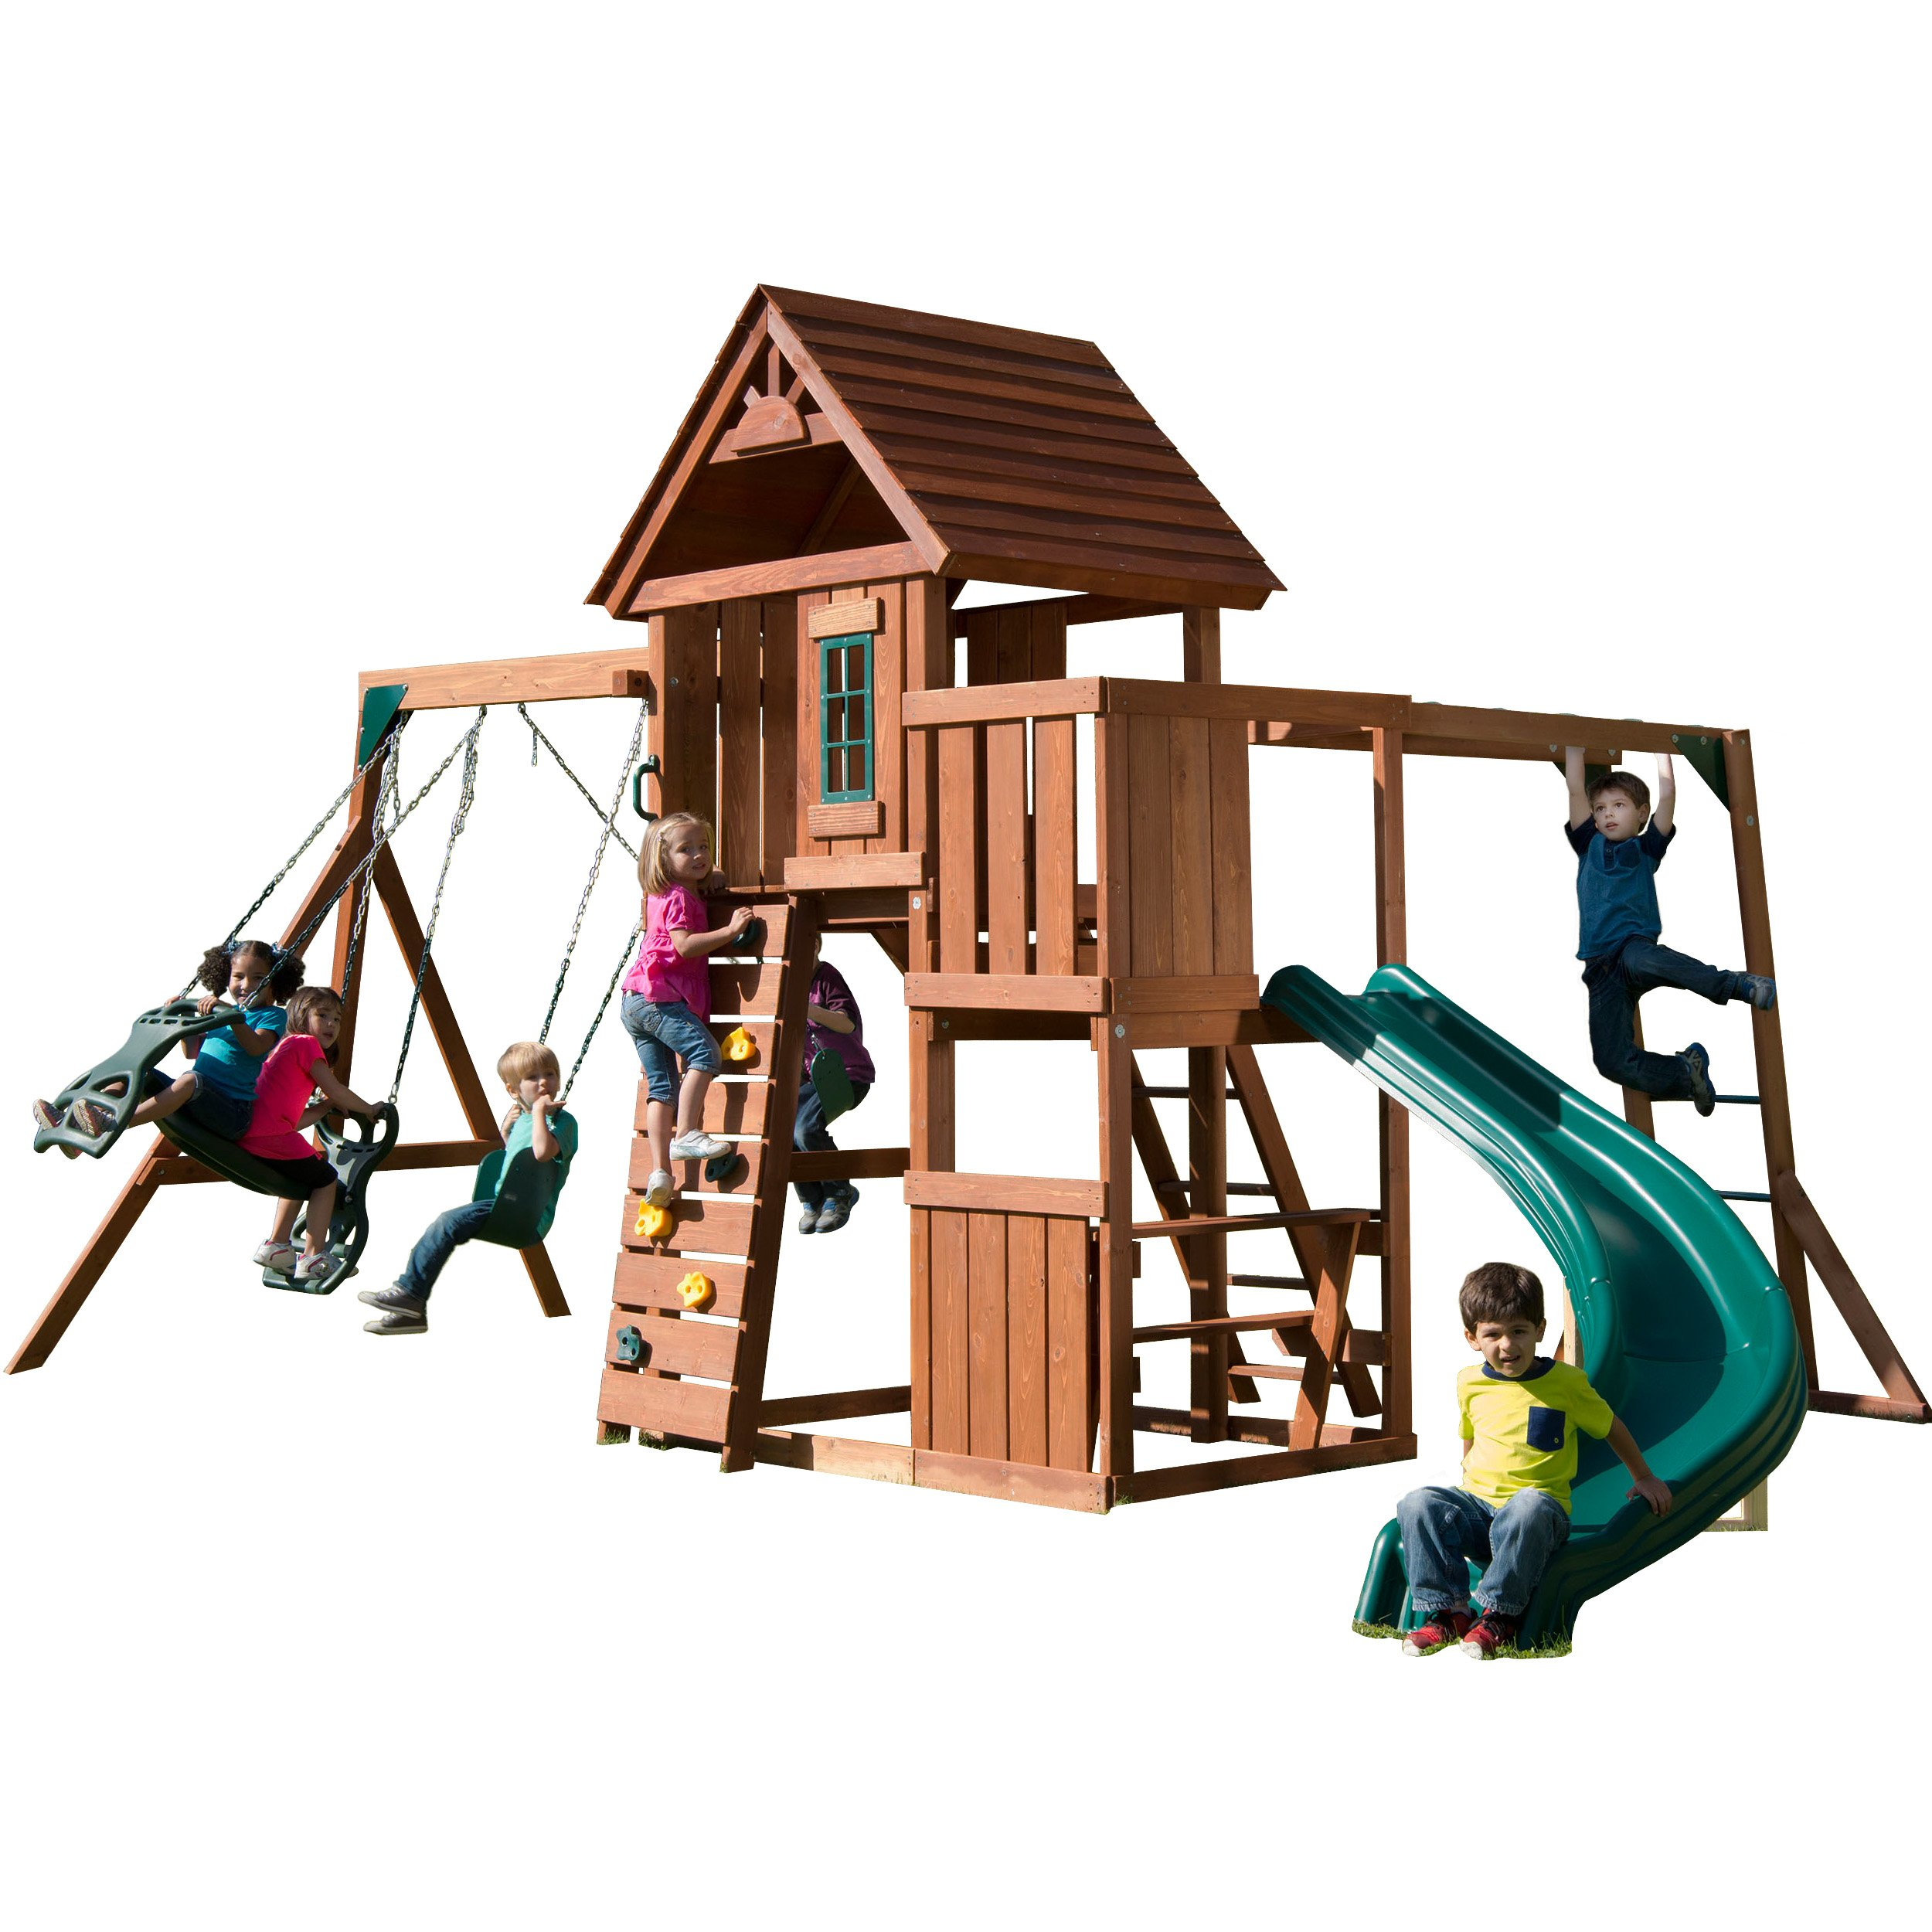 Swing-N-Slide Cedar Brook Play Set with Two Swings, Slide, Monkey Bars, Picnic Table and Glider by Swing-N-Slide